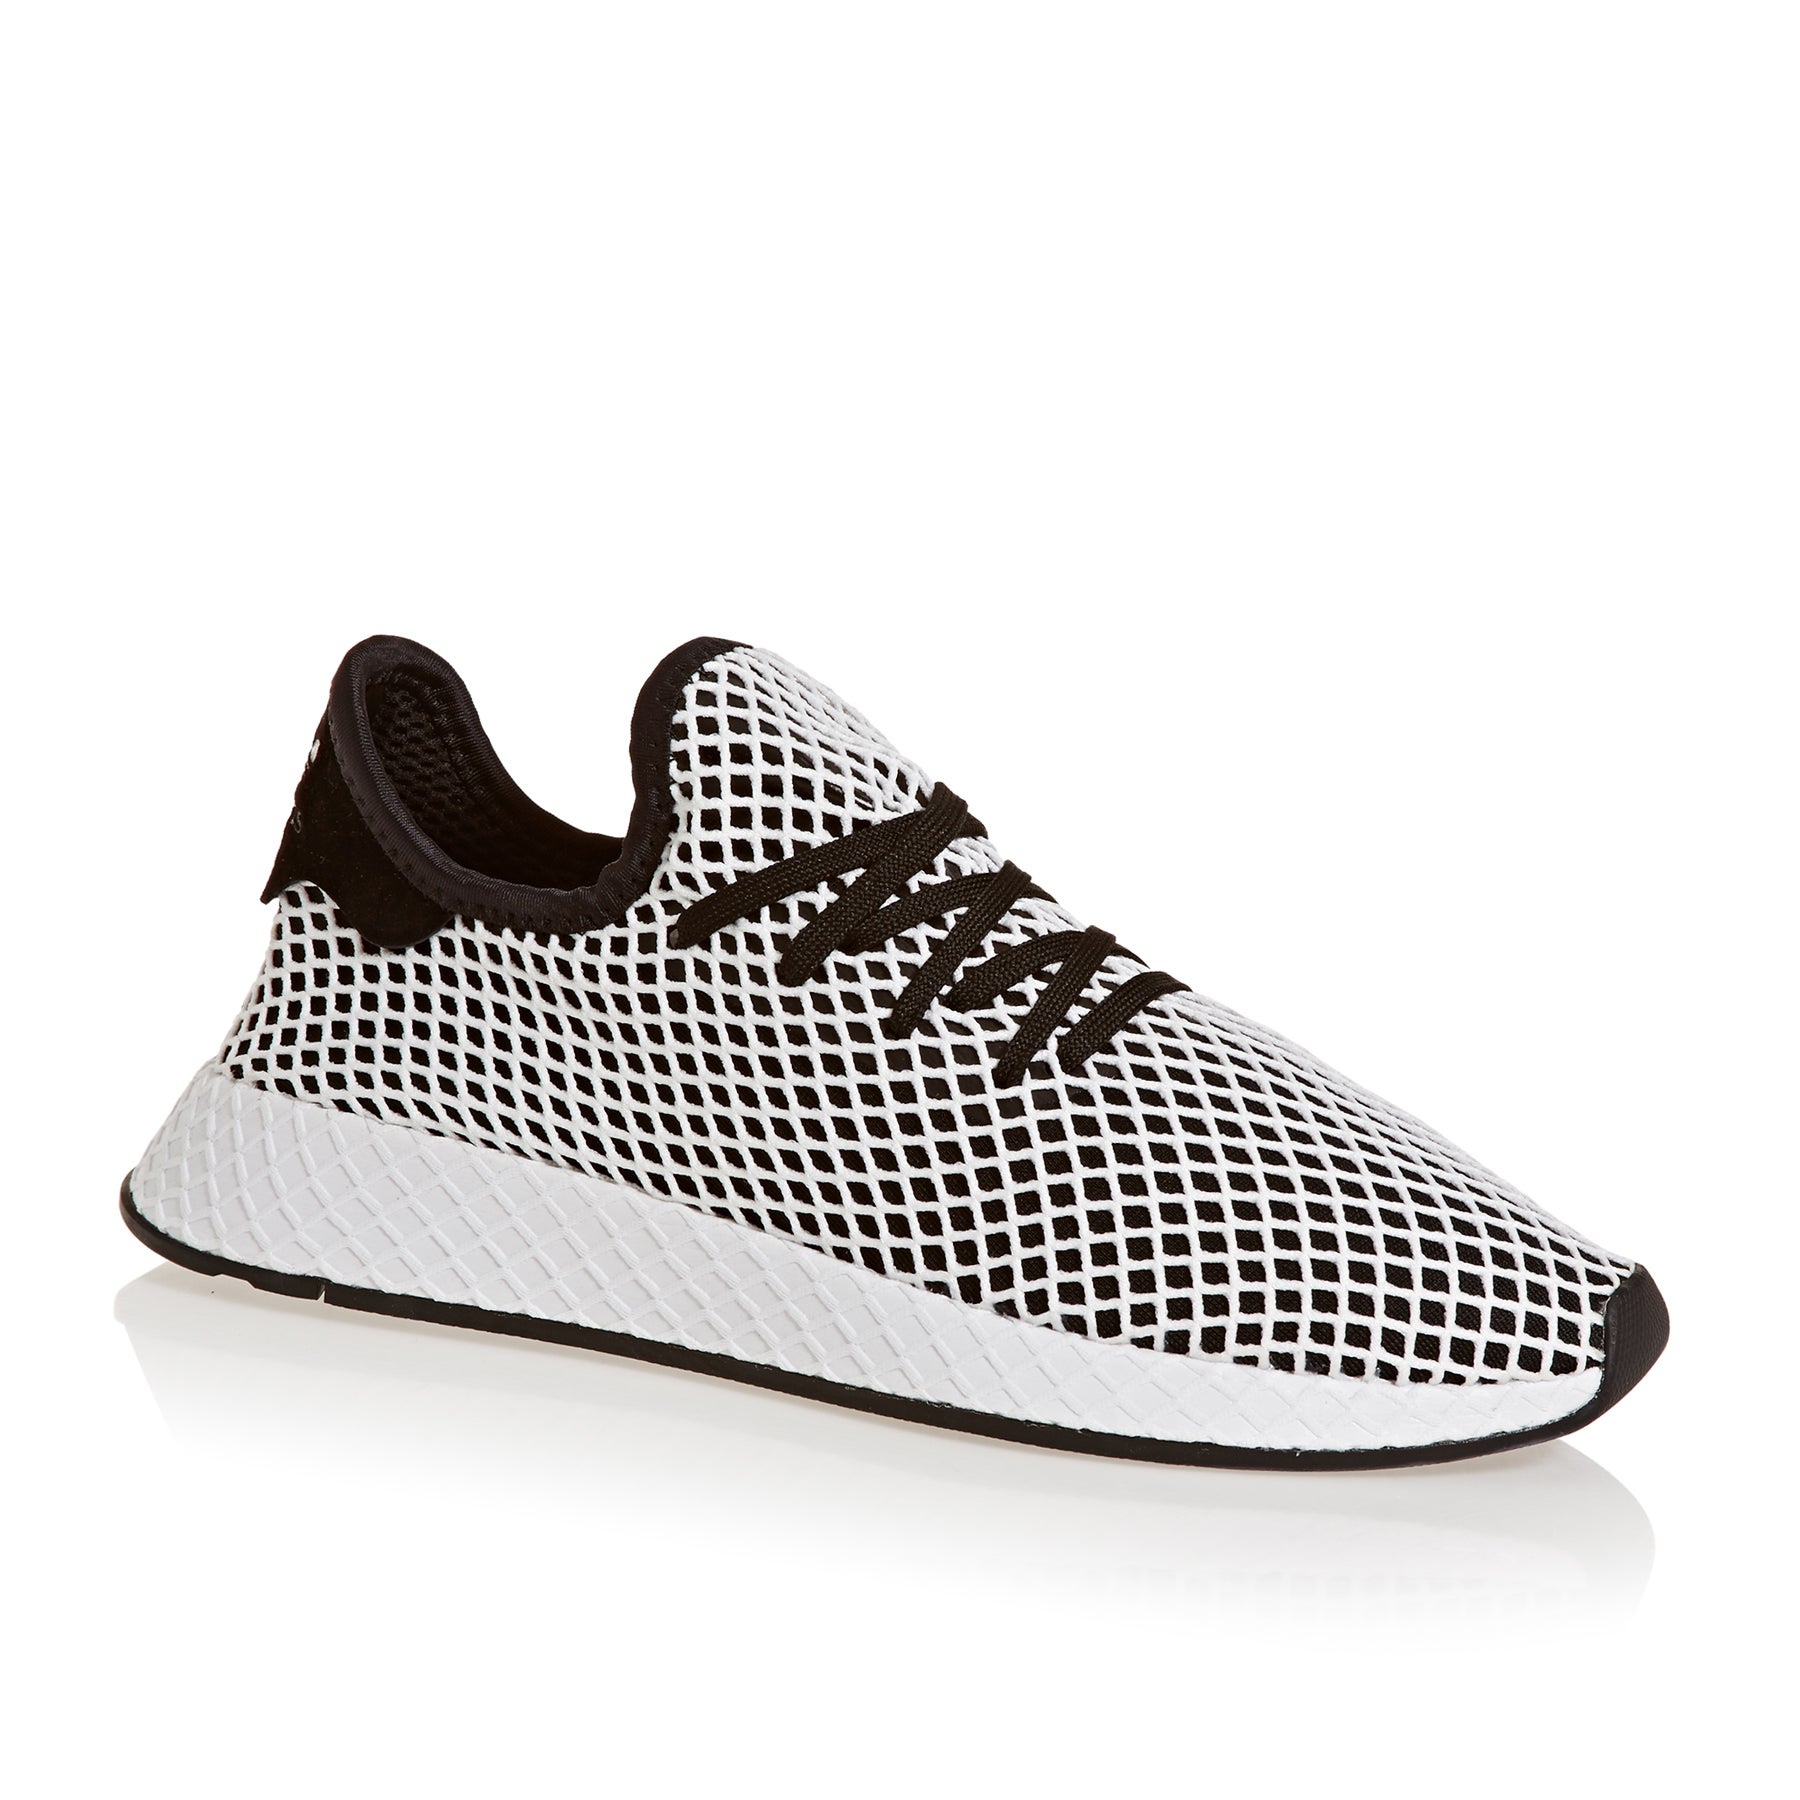 bfd7d0339558 messi adidas soccer cleats pink. adidas deerupt sale mens jeans